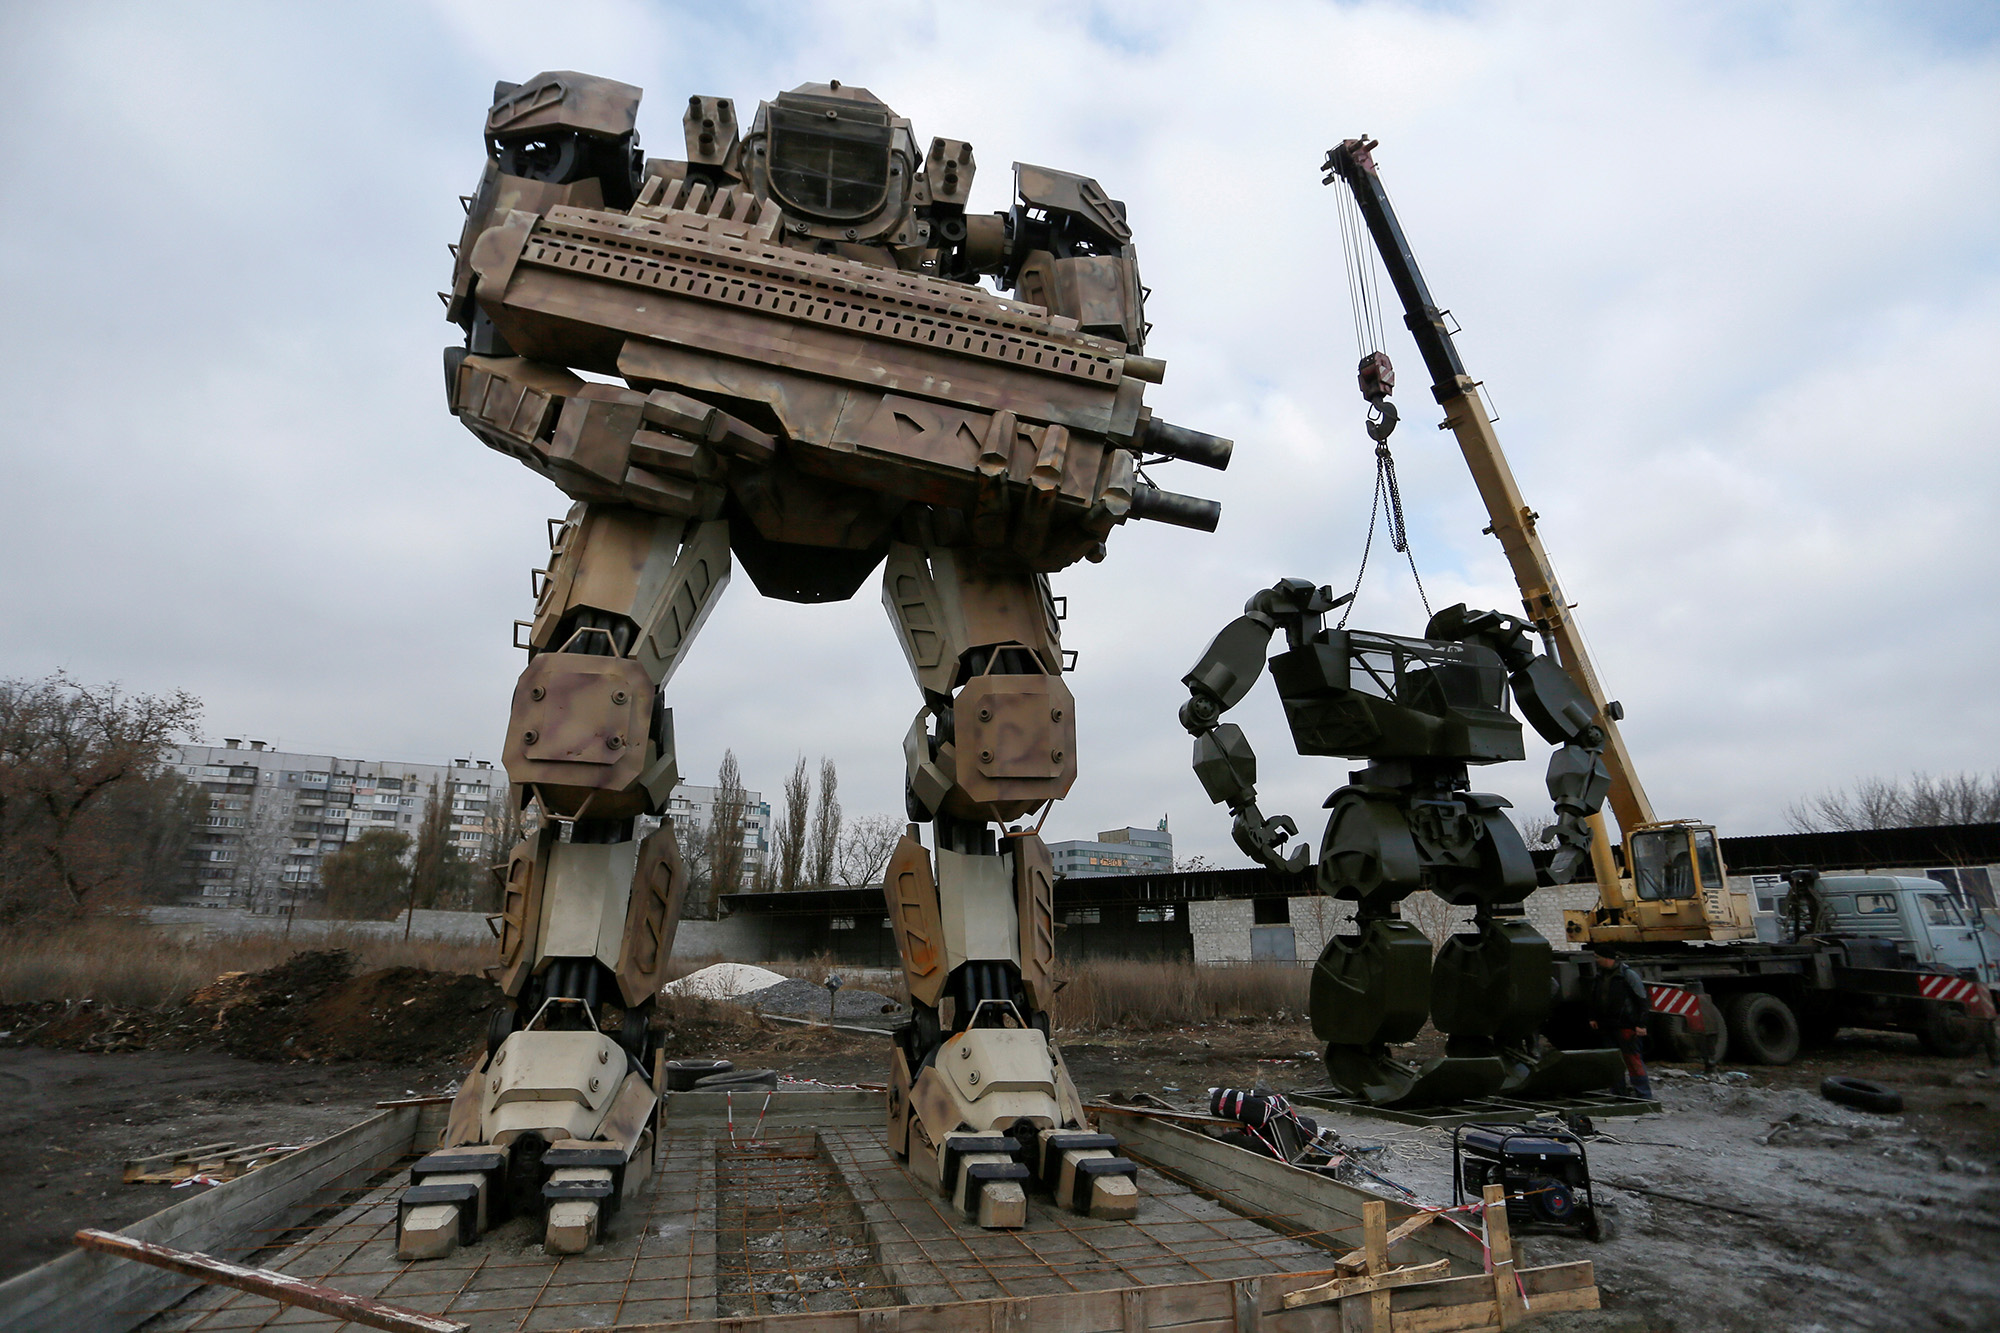 Robots made by local enthusiasts and employees of an automobile repair workshop are seen during installation works on the outskirts of the rebel-controlled city of Donetsk, Ukraine, November 26, 2020. According to creators, who plan to open a robotics engineering park, 13-metre and 6-metre-high sculptures featuring transformer robots were made of waste metal including car components and weigh about 4 and 2 tonnes respectively. REUTERS/Alexander Ermochenko